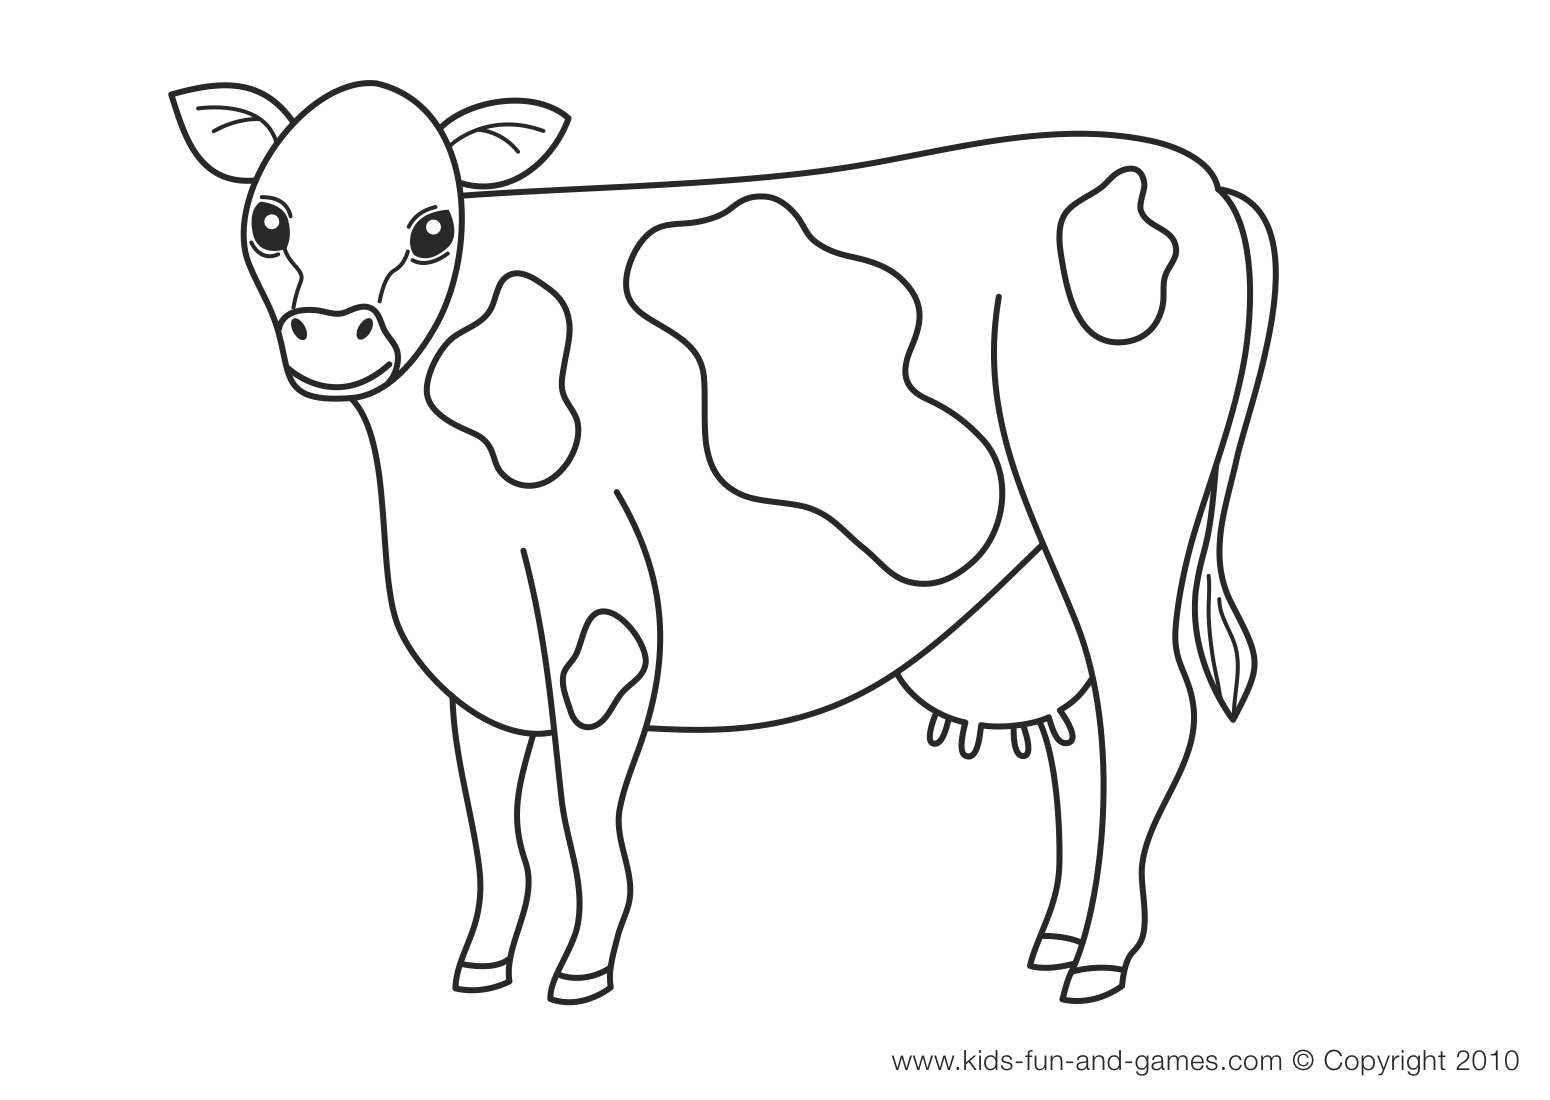 Coloringsco Coloring Pages For Girls